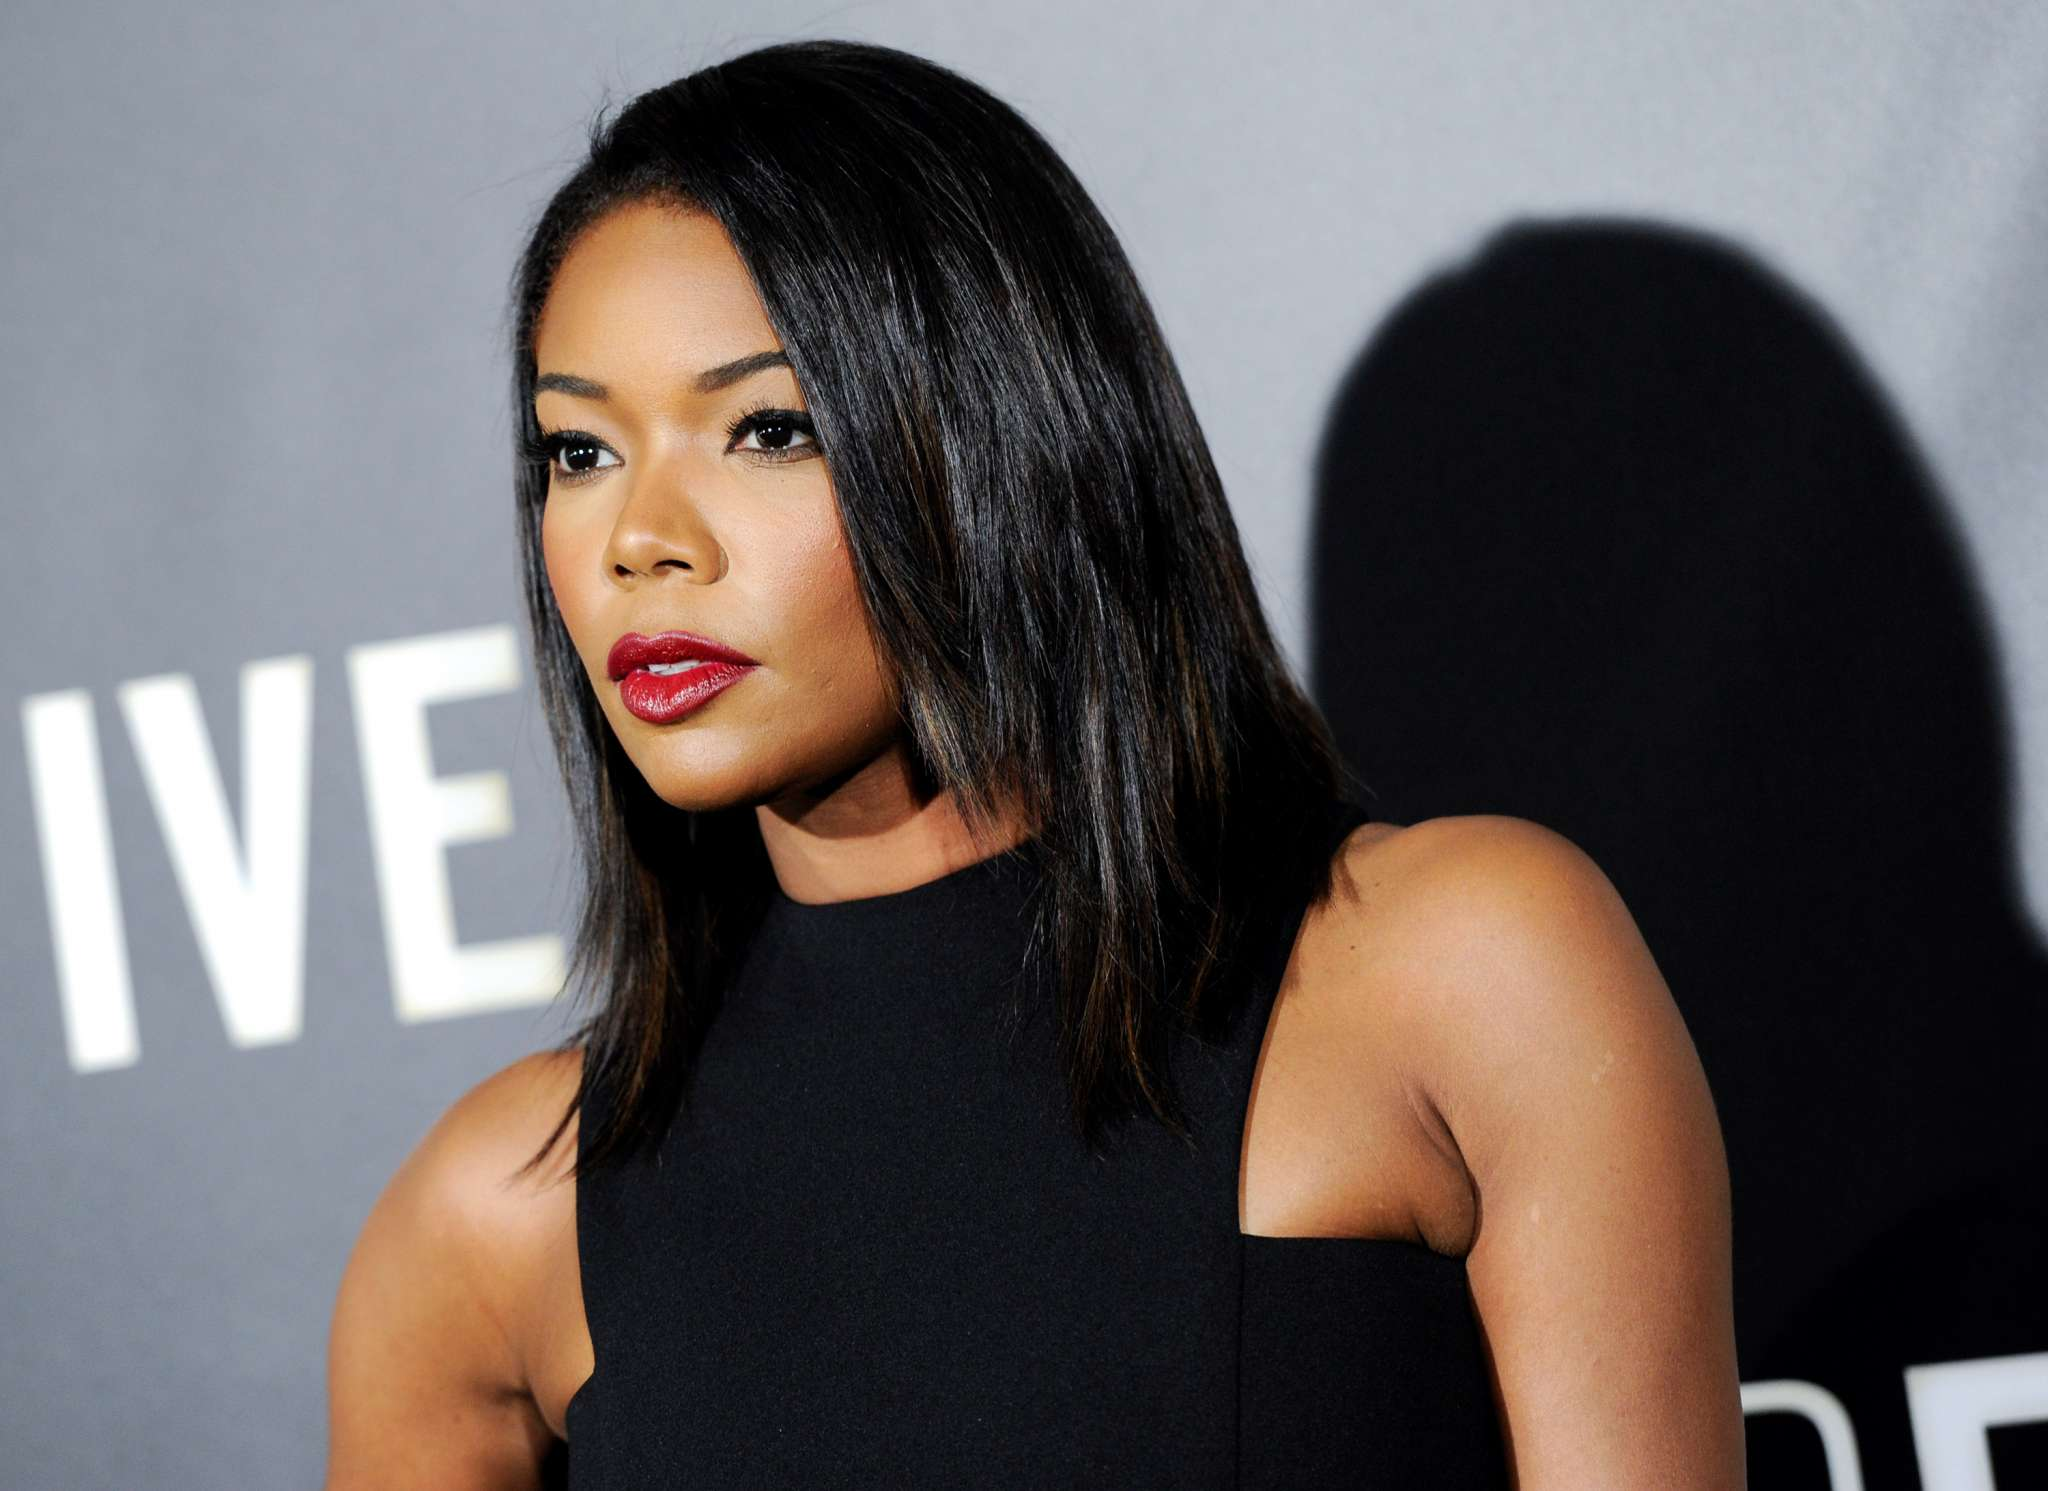 gabrielle-union-gushes-over-her-daughter-kaavia-james-check-out-the-video-she-posted